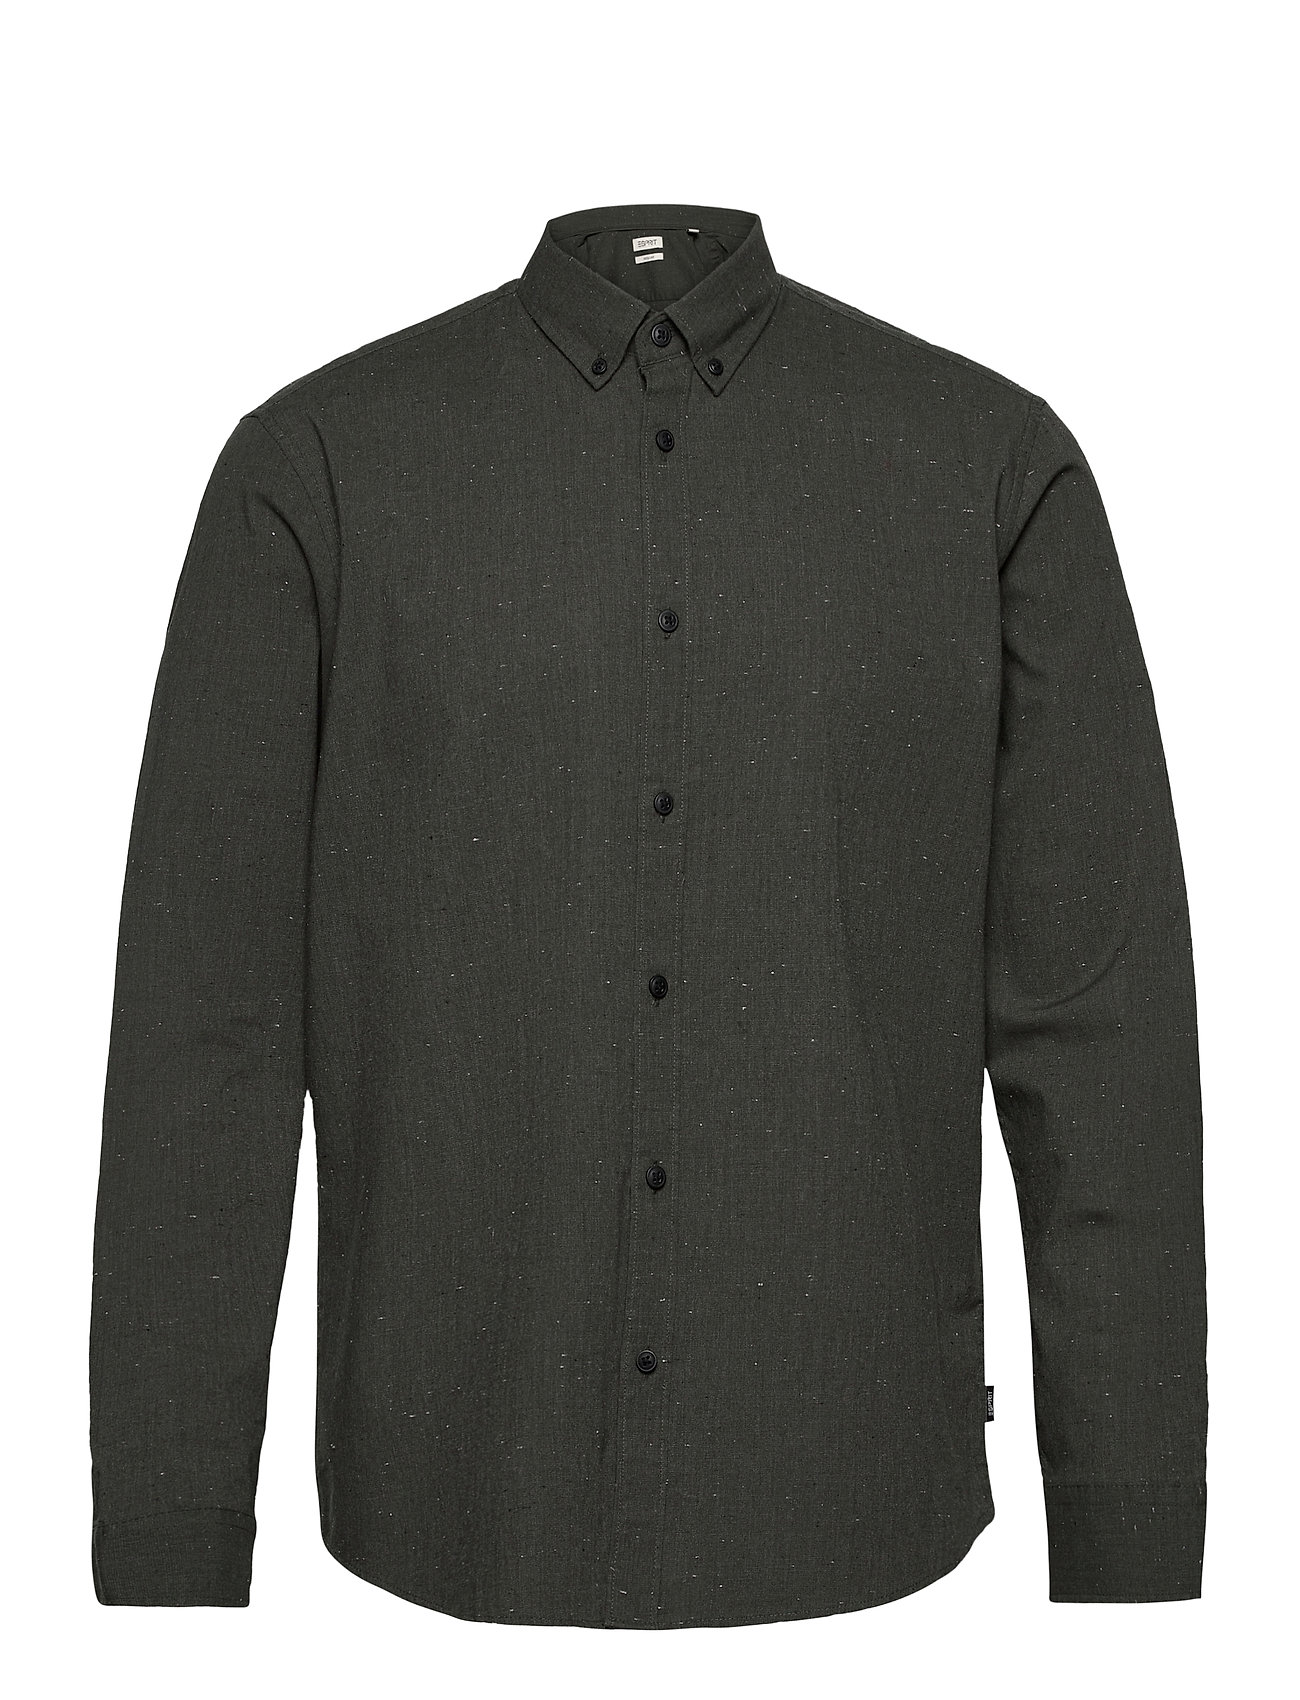 Image of Shirts Woven Skjorte Casual Grøn Esprit Casual (3452227691)